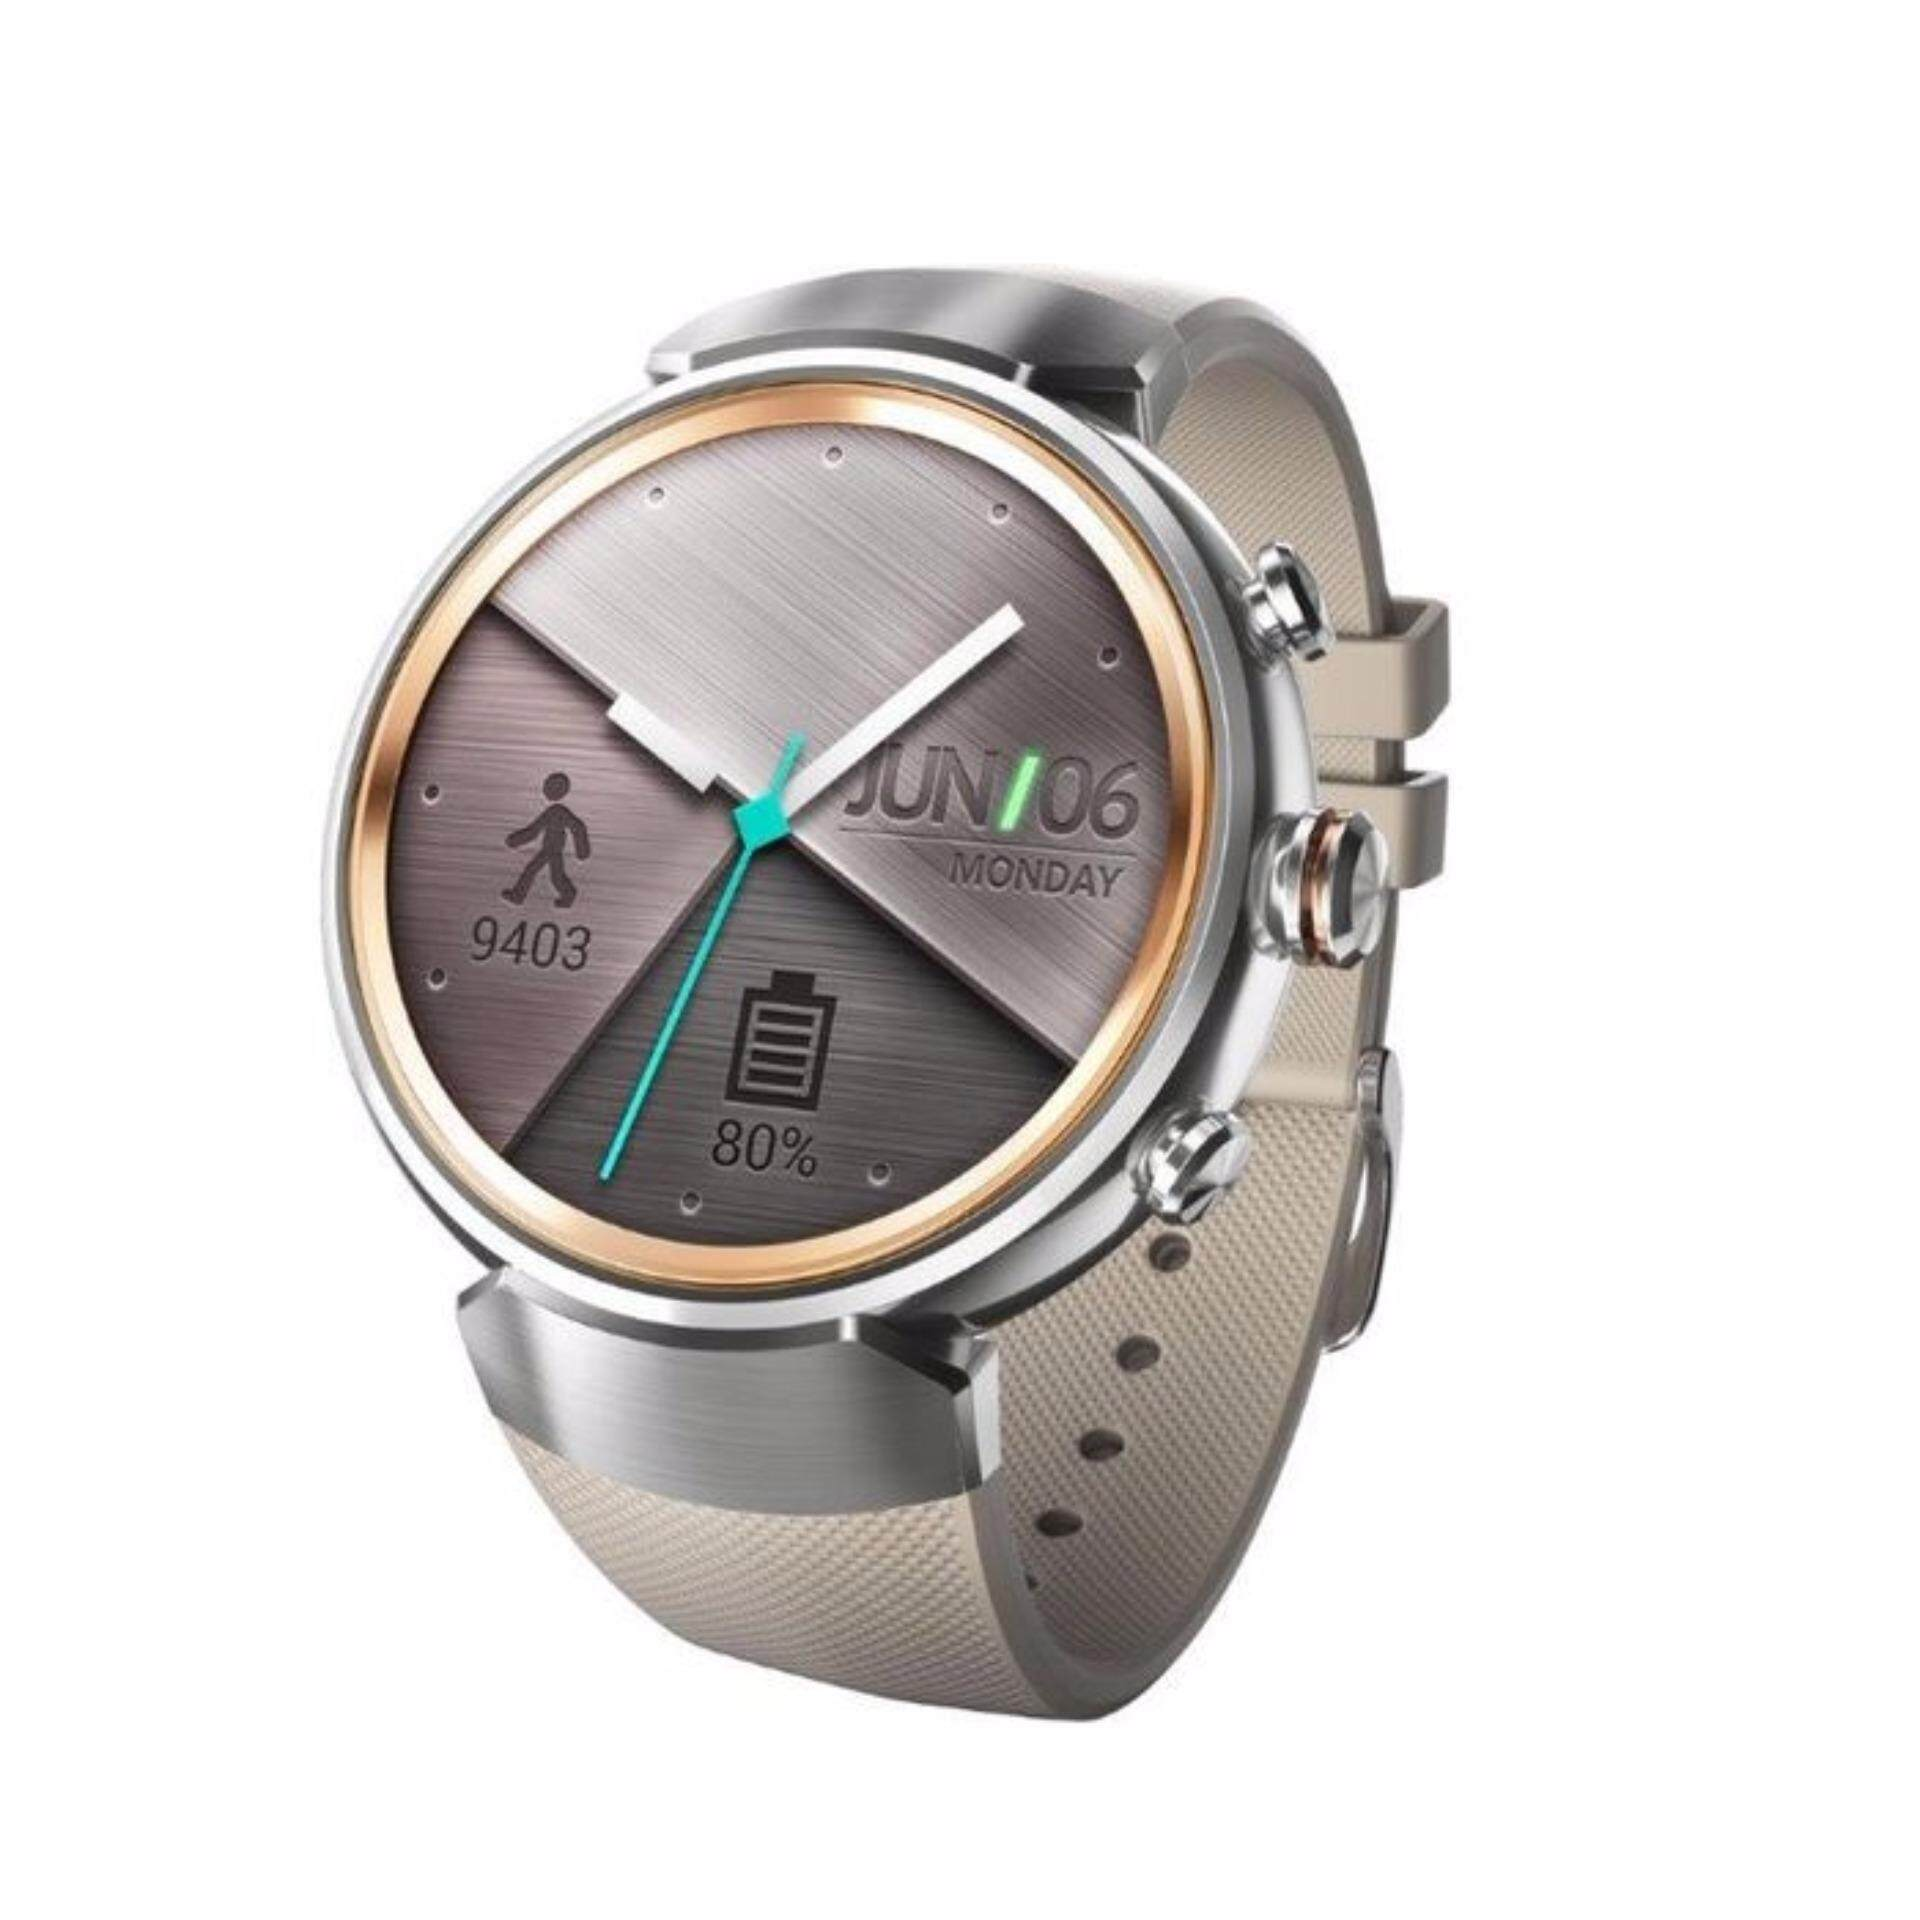 Asus – ZenWatch 3 Smartwatch Stainless Steel